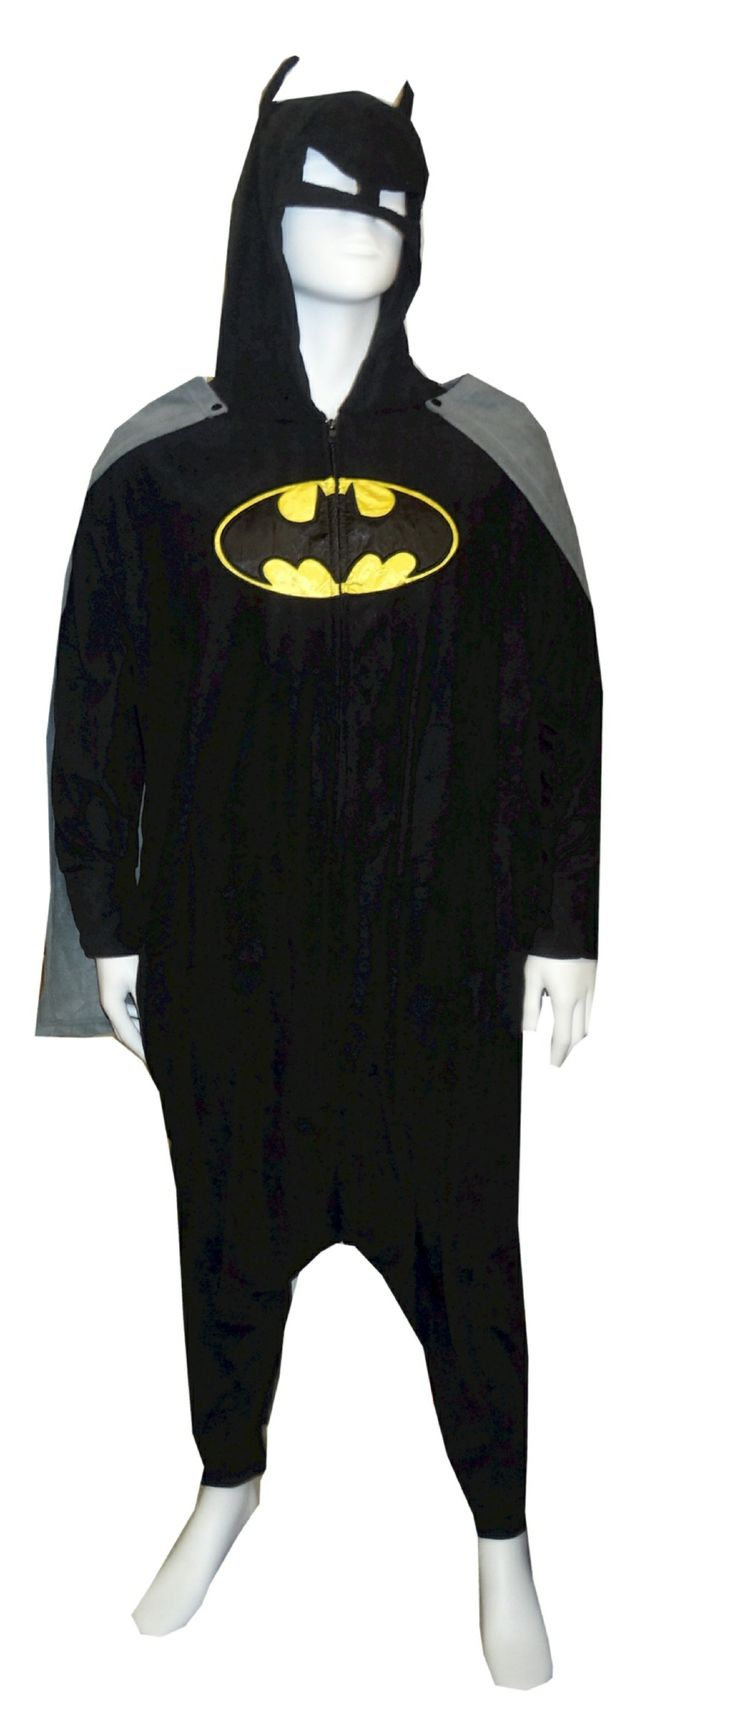 WebUndies carries adult footie pajamas in many different themes and designs at affordable prices. They're not just for kids! FREE shipping and FREE returns on all orders shipping in the US.